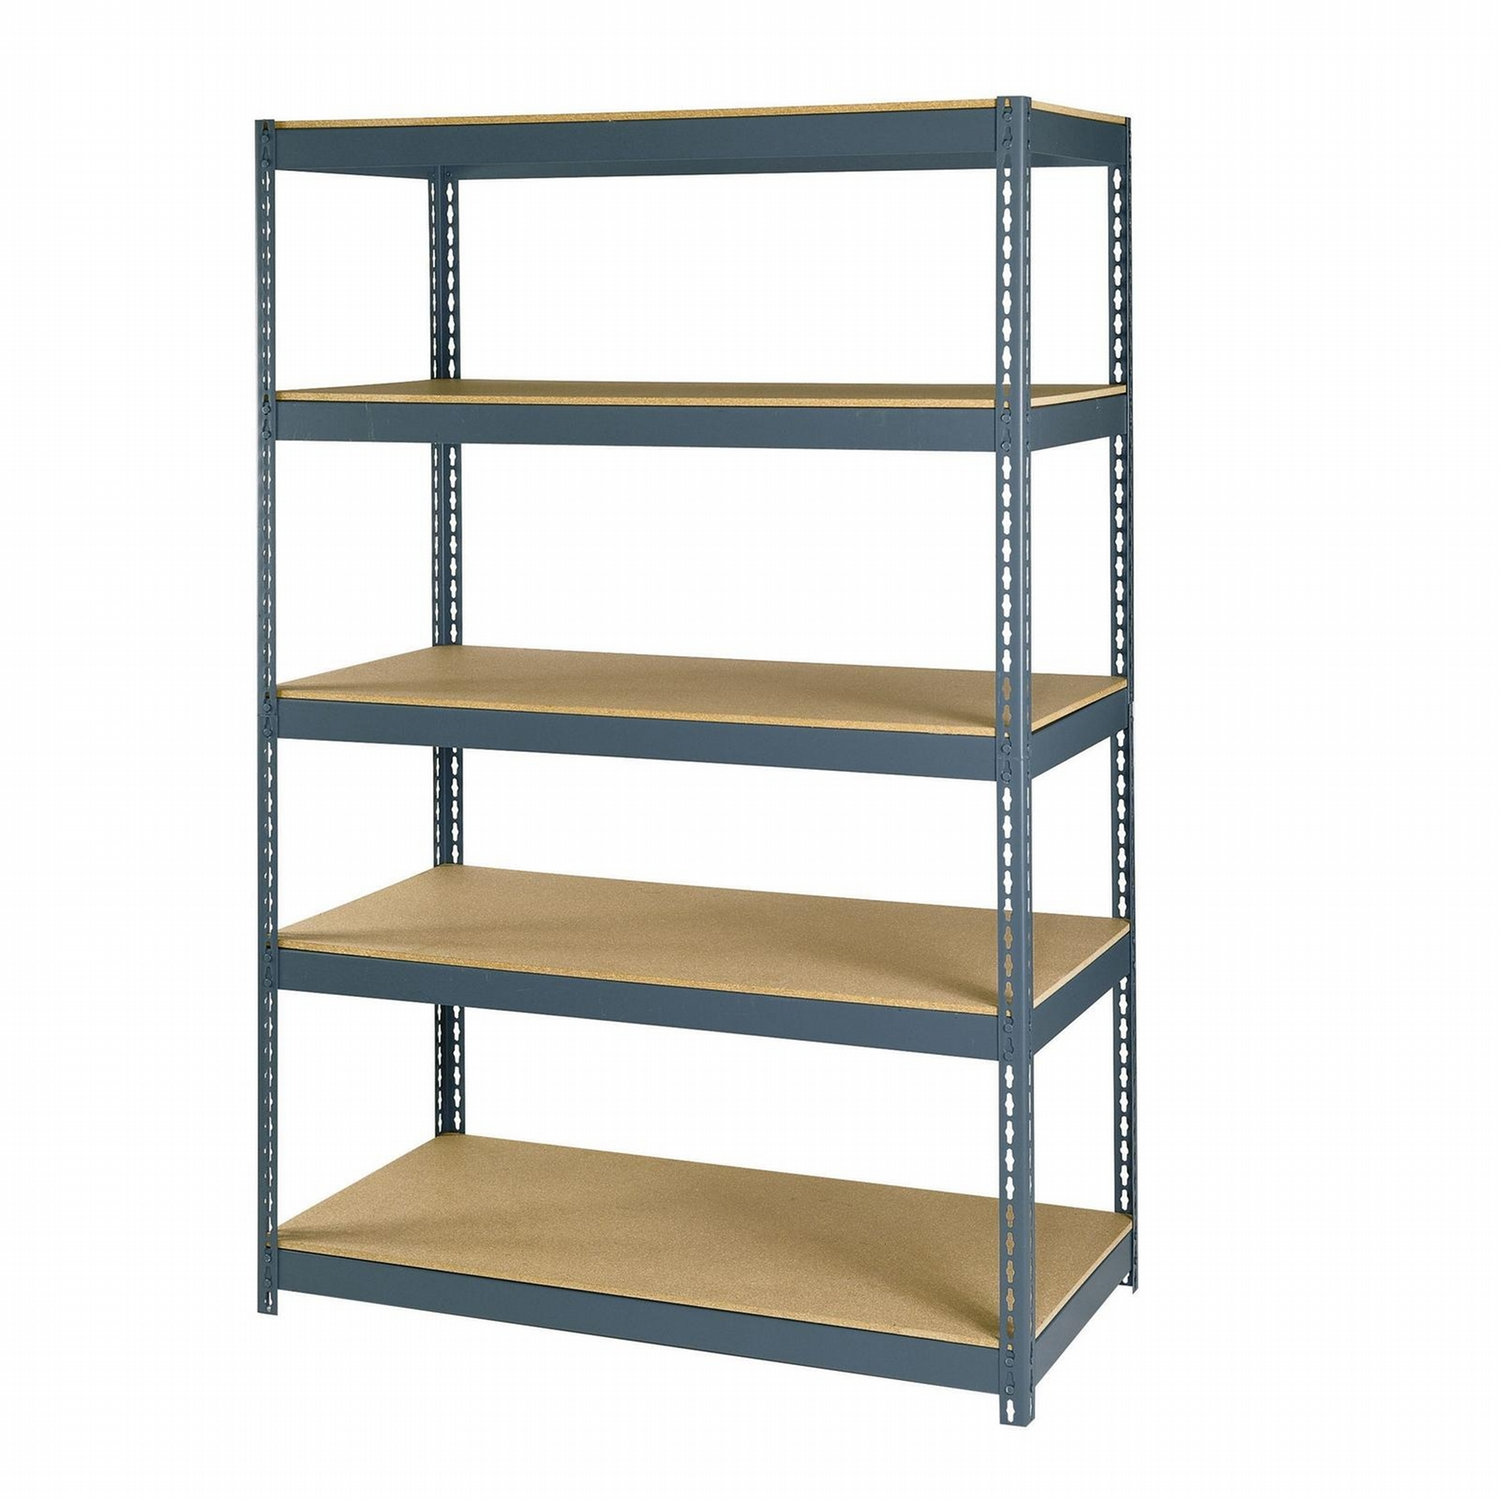 Walmart Shelving | Wall Mounted Shelves Walmart | Walmart Wire Shelves